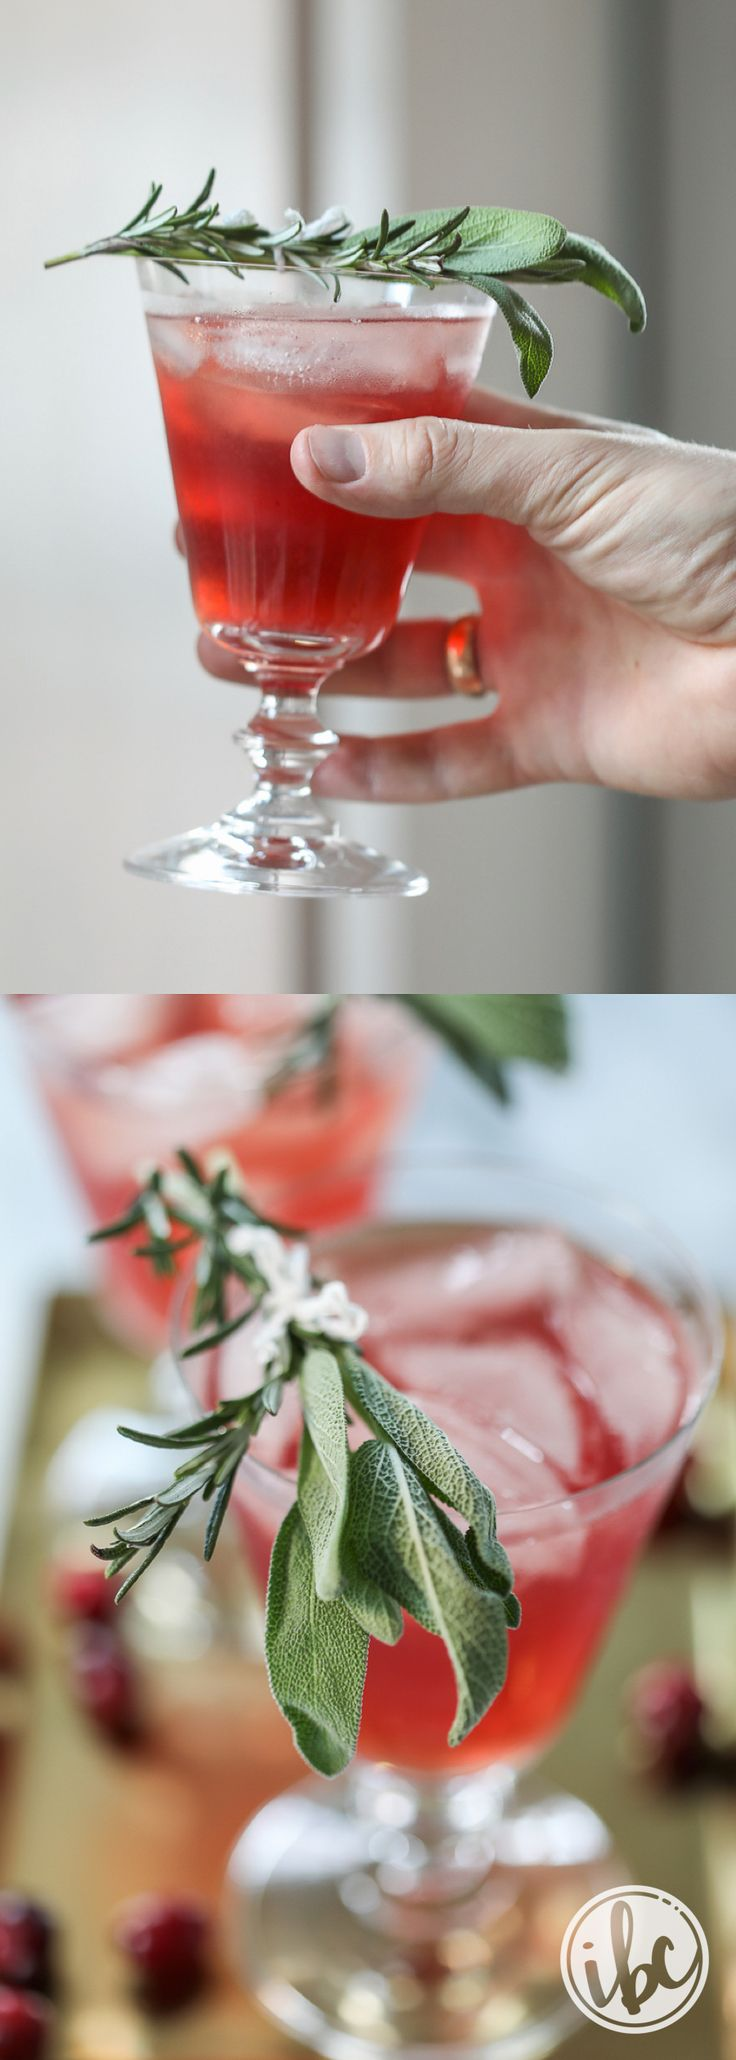 Cranberry Bourbon Cocktail recipe - Thanksgiving Cocktail - Holiday Cocktail Ideas